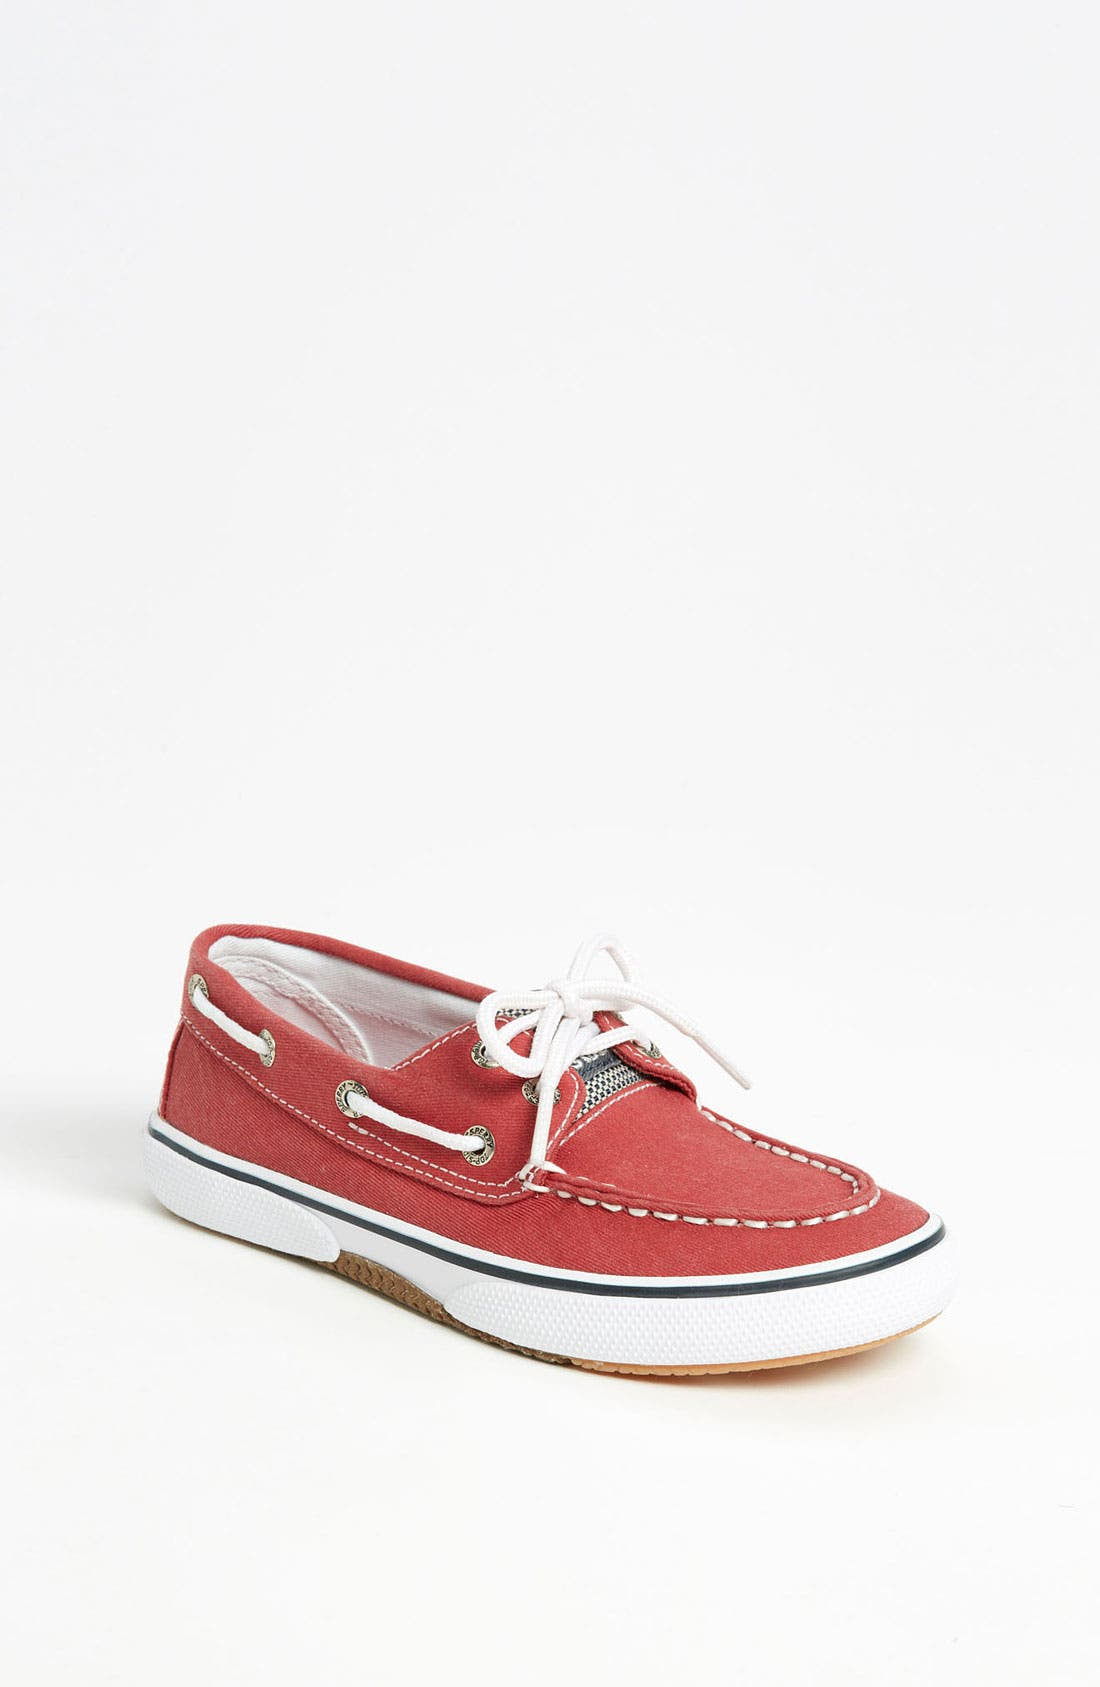 Alternate Image 1 Selected - Sperry Top-Sider® Kids 'Halyard' Boat Shoe (Walker, Toddler, Little Kid & Big Kid)